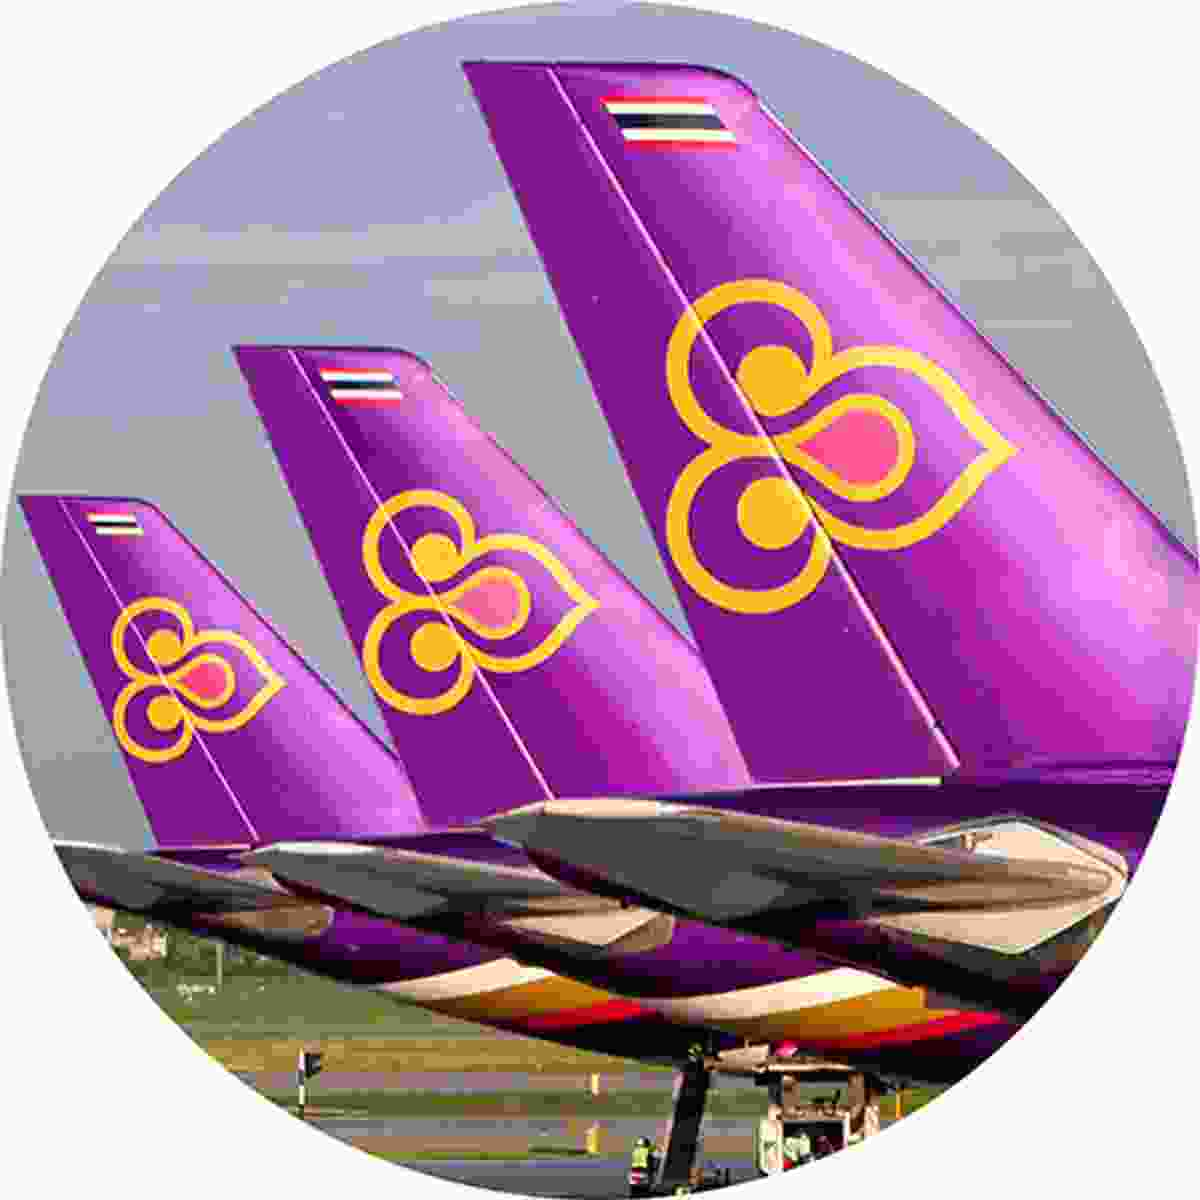 The Thai Airways logo is a stylised magnolia blossom. Turn it sideways, however, and it becomes a representation of 'way', the traditional Thai greeting (Shutterstock)